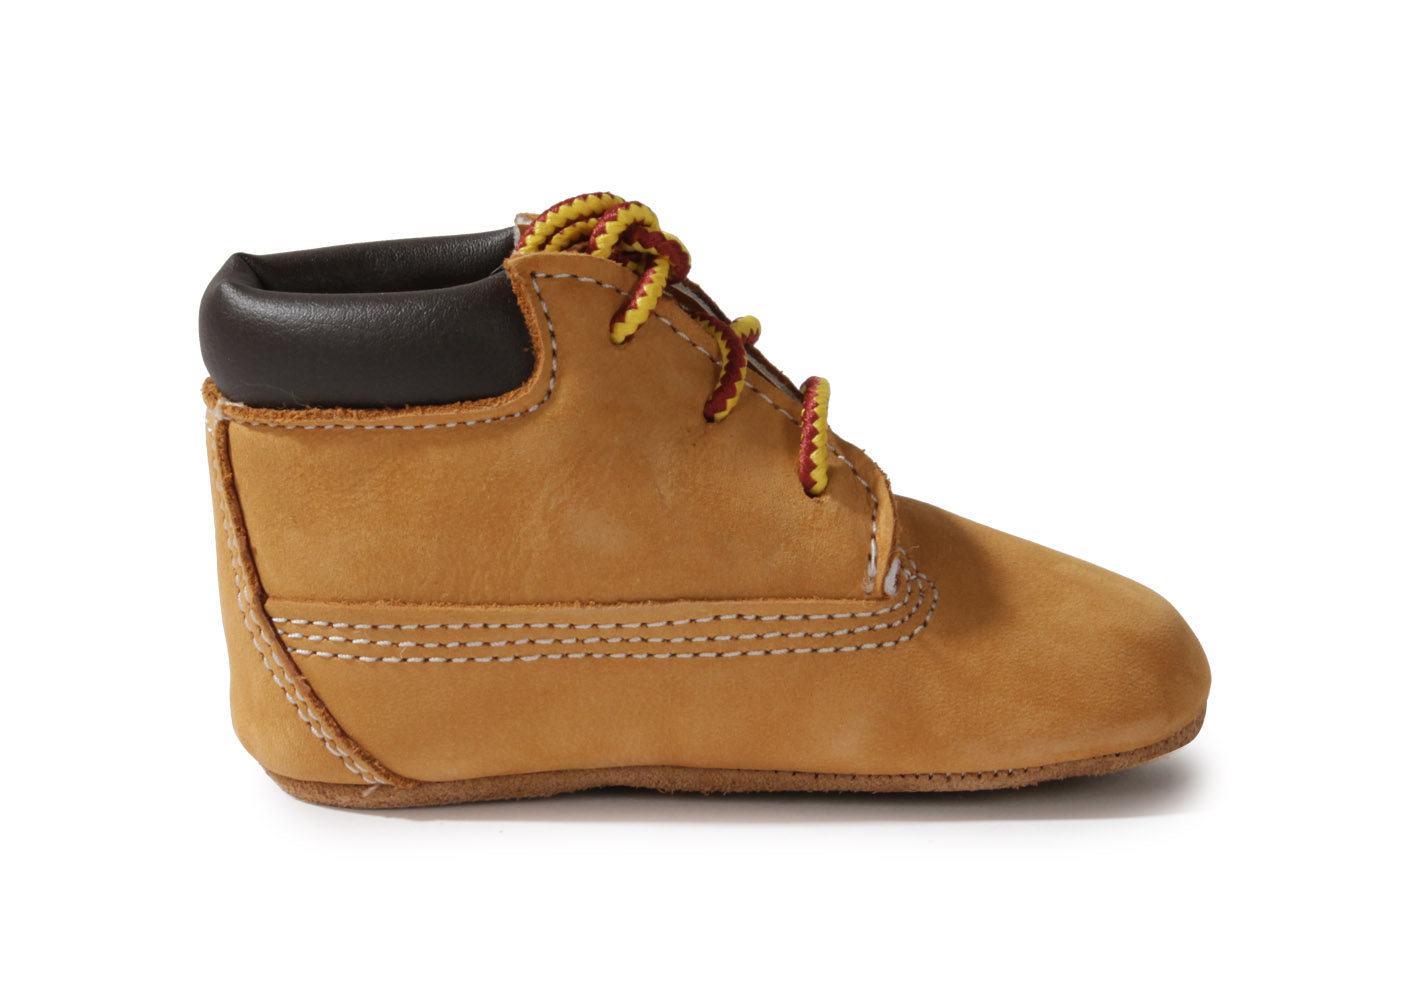 Timberland Pack Boots 6 inch Crib Bonnet Beige Chaussures